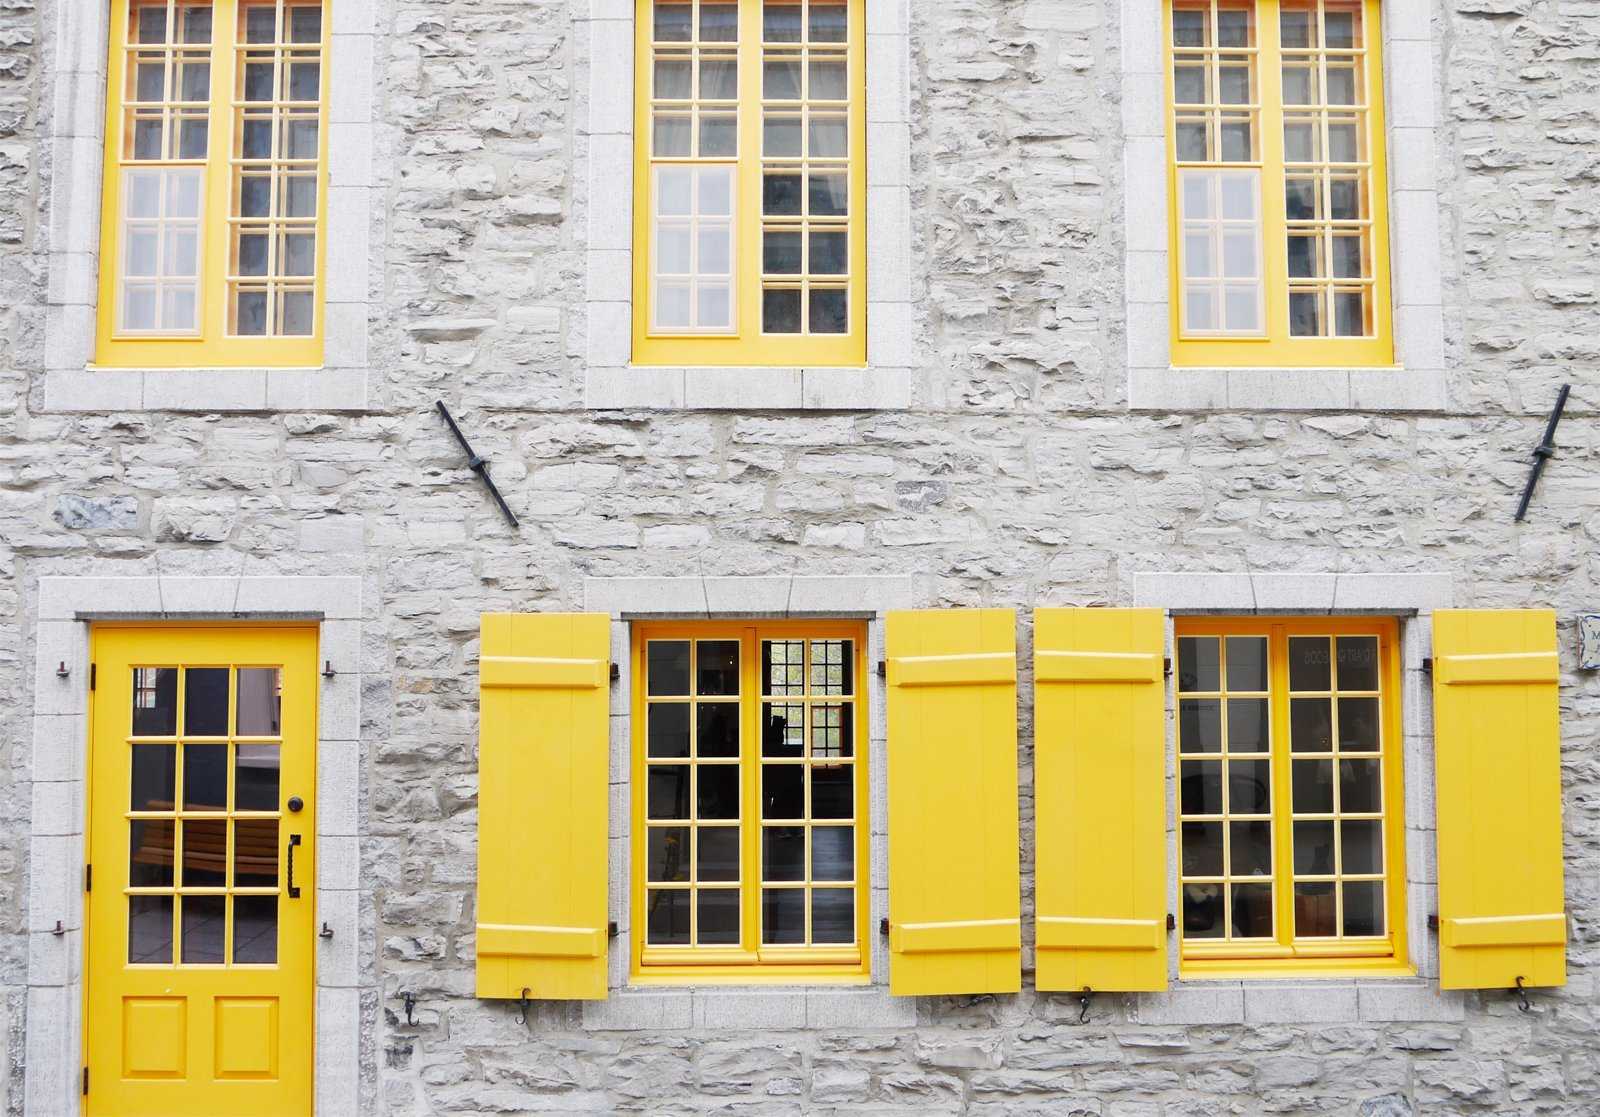 the front of a building in Old Quebec City, Canada